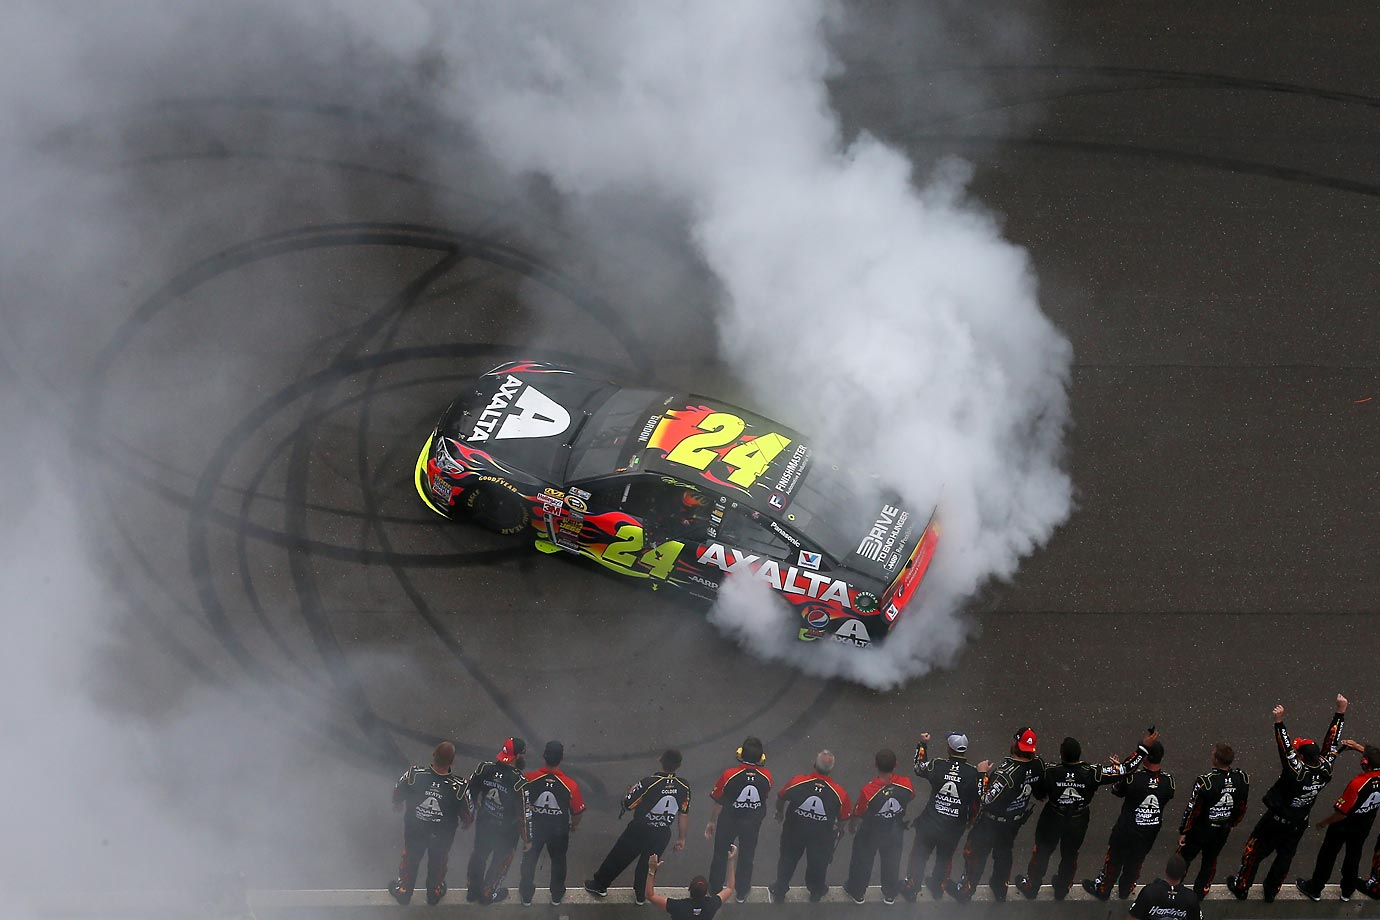 Jeff Gordon celebrates his fifth victory at the Brickyard 400 in his home state of Indiana with a burn out. The win came just eight days before Gordon's 43rd birthday.